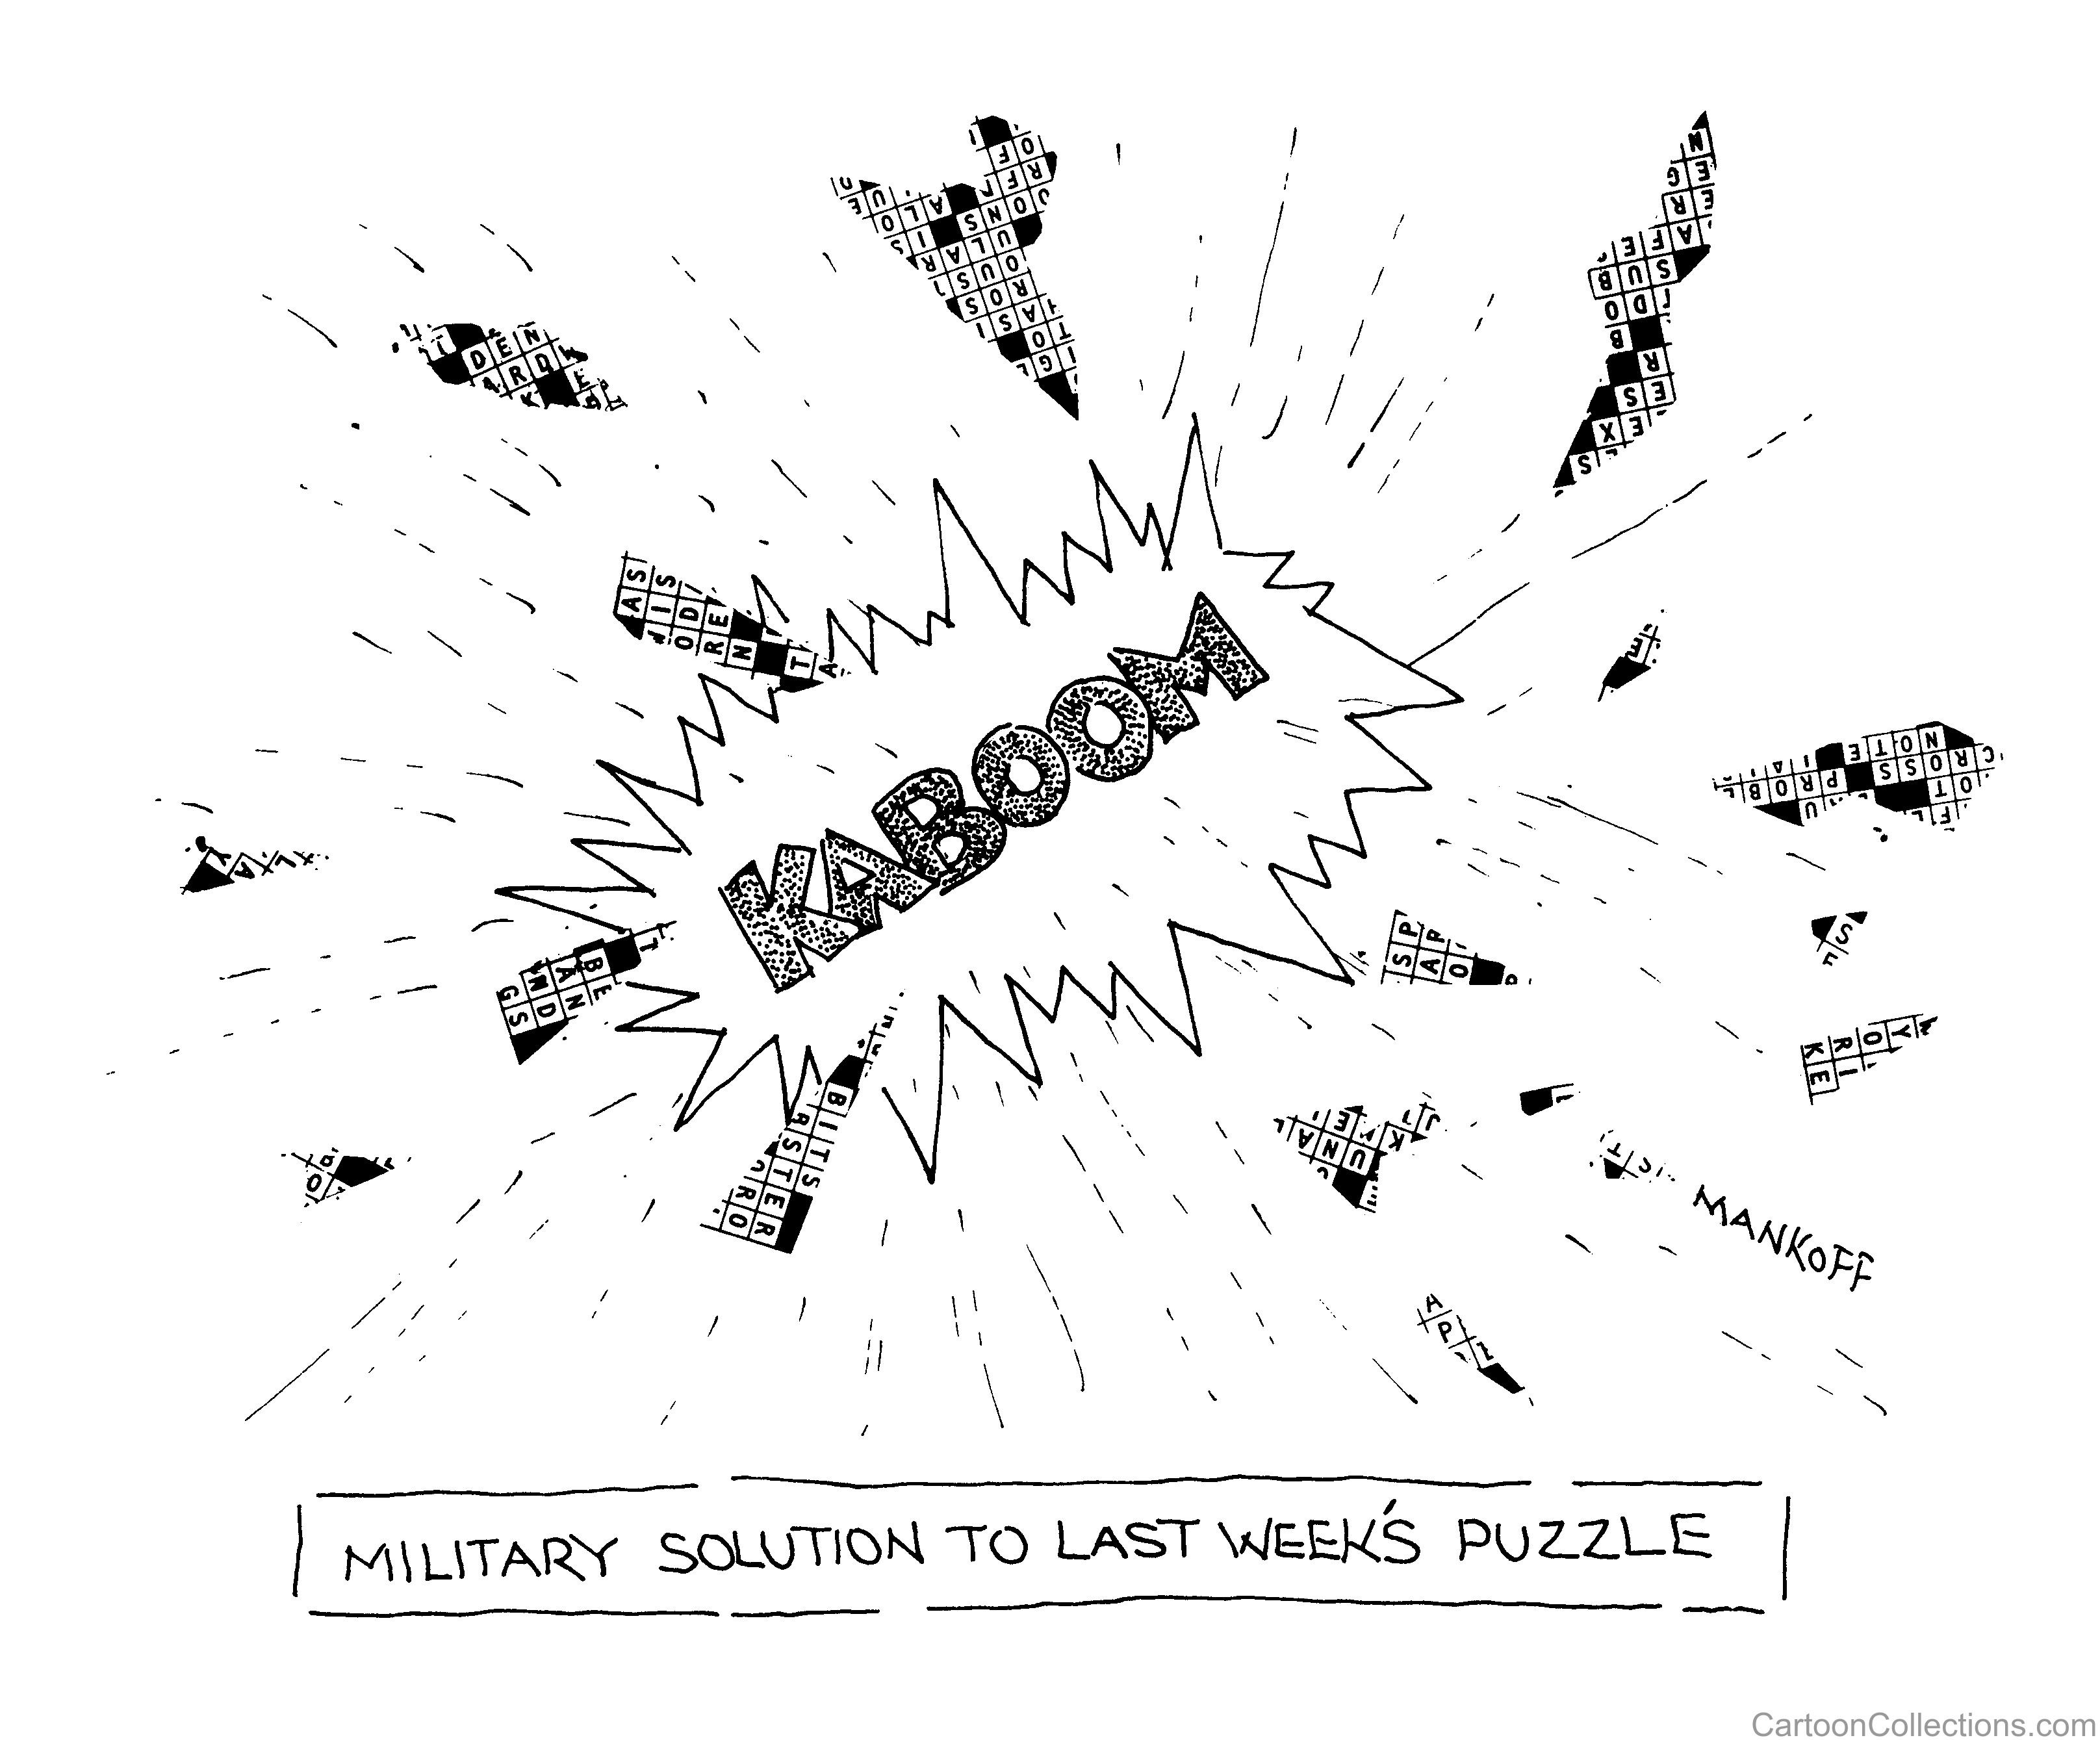 New Yorker Cartoon of an explosion and the caption